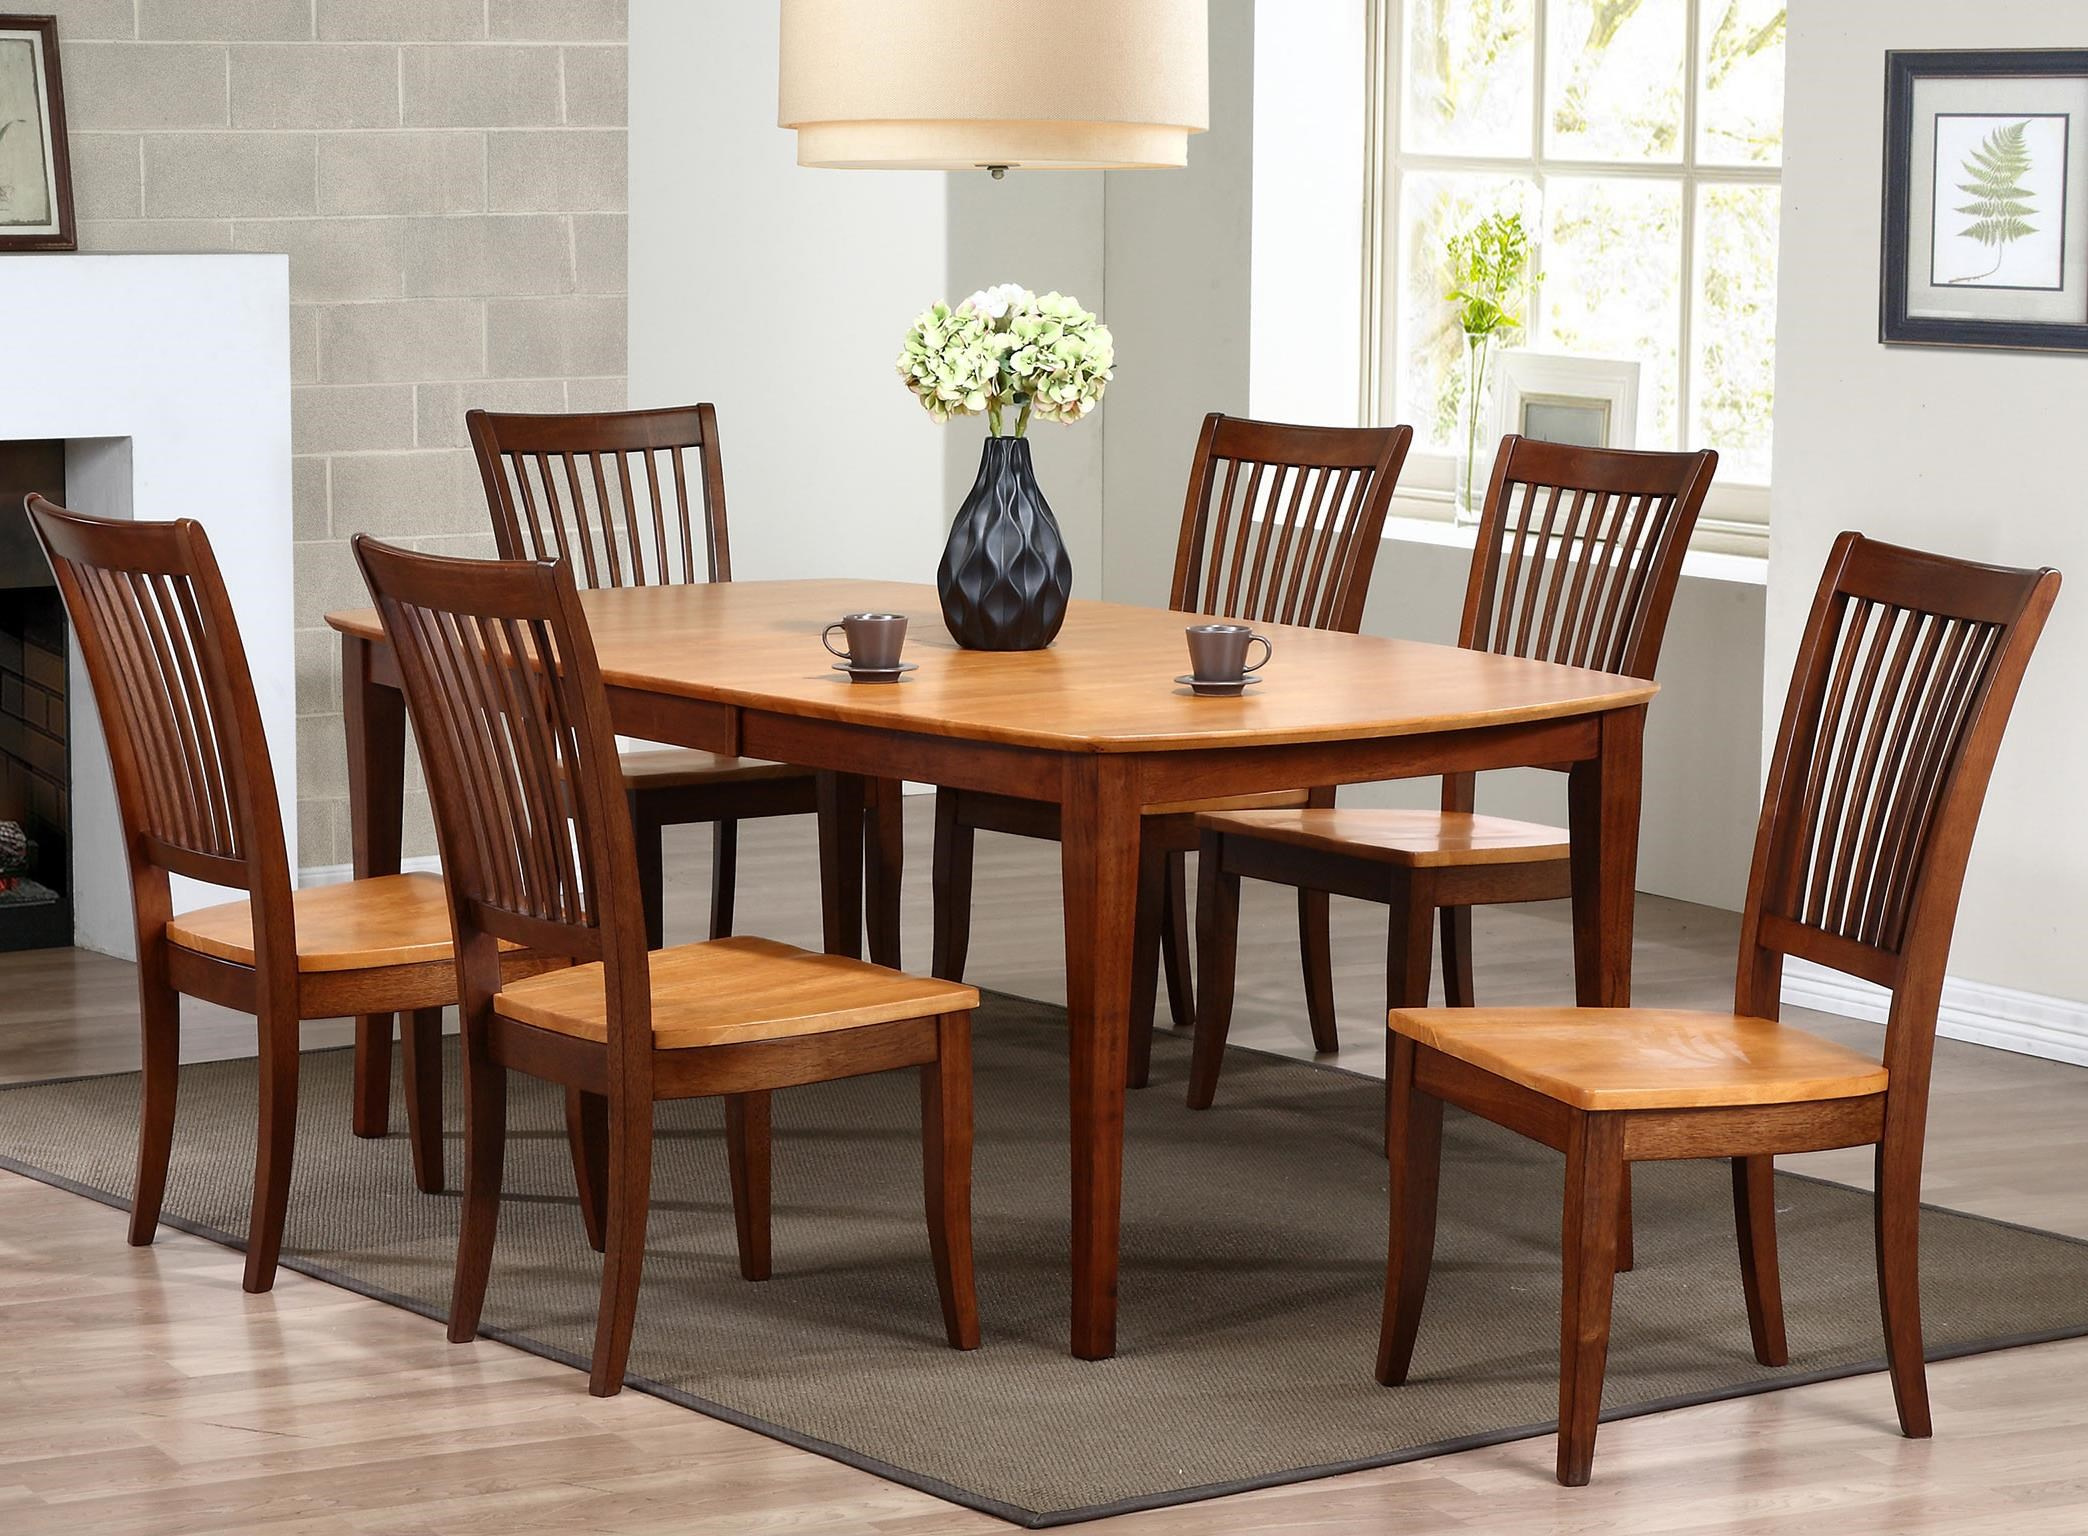 Captivating Winners Only Santa Barbara 7 Piece Dining Set With Slat Back Chairs